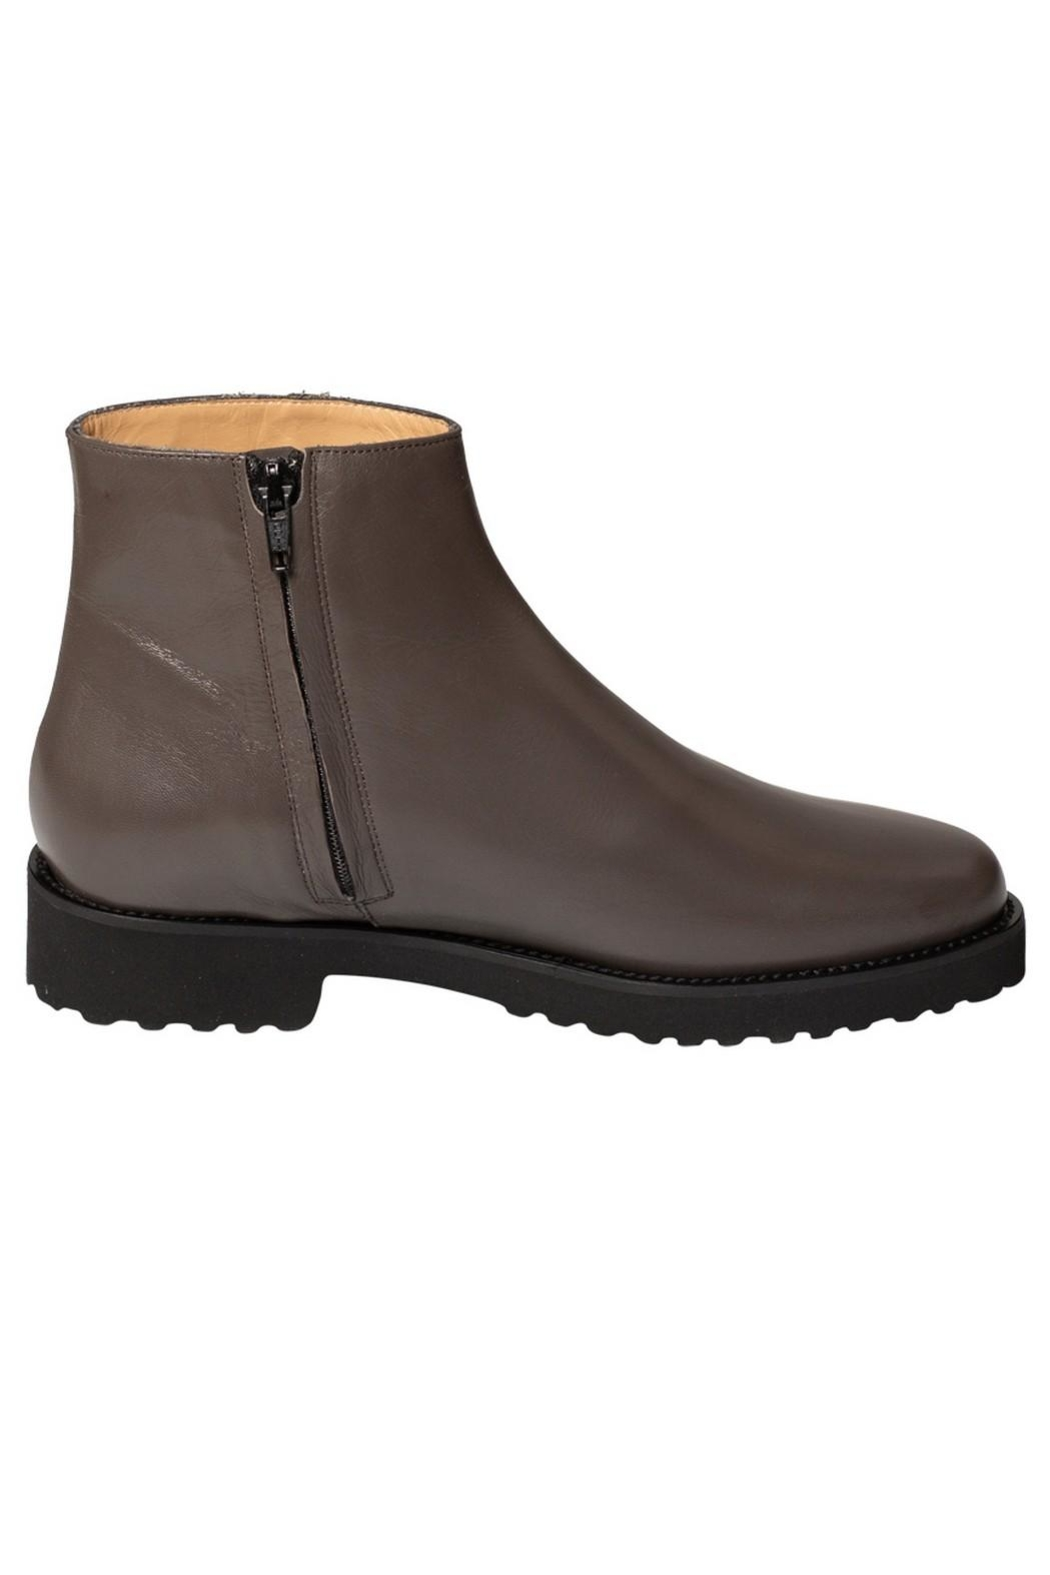 Pascucci Grey Leather Ankle-Boots - Back Cropped Image